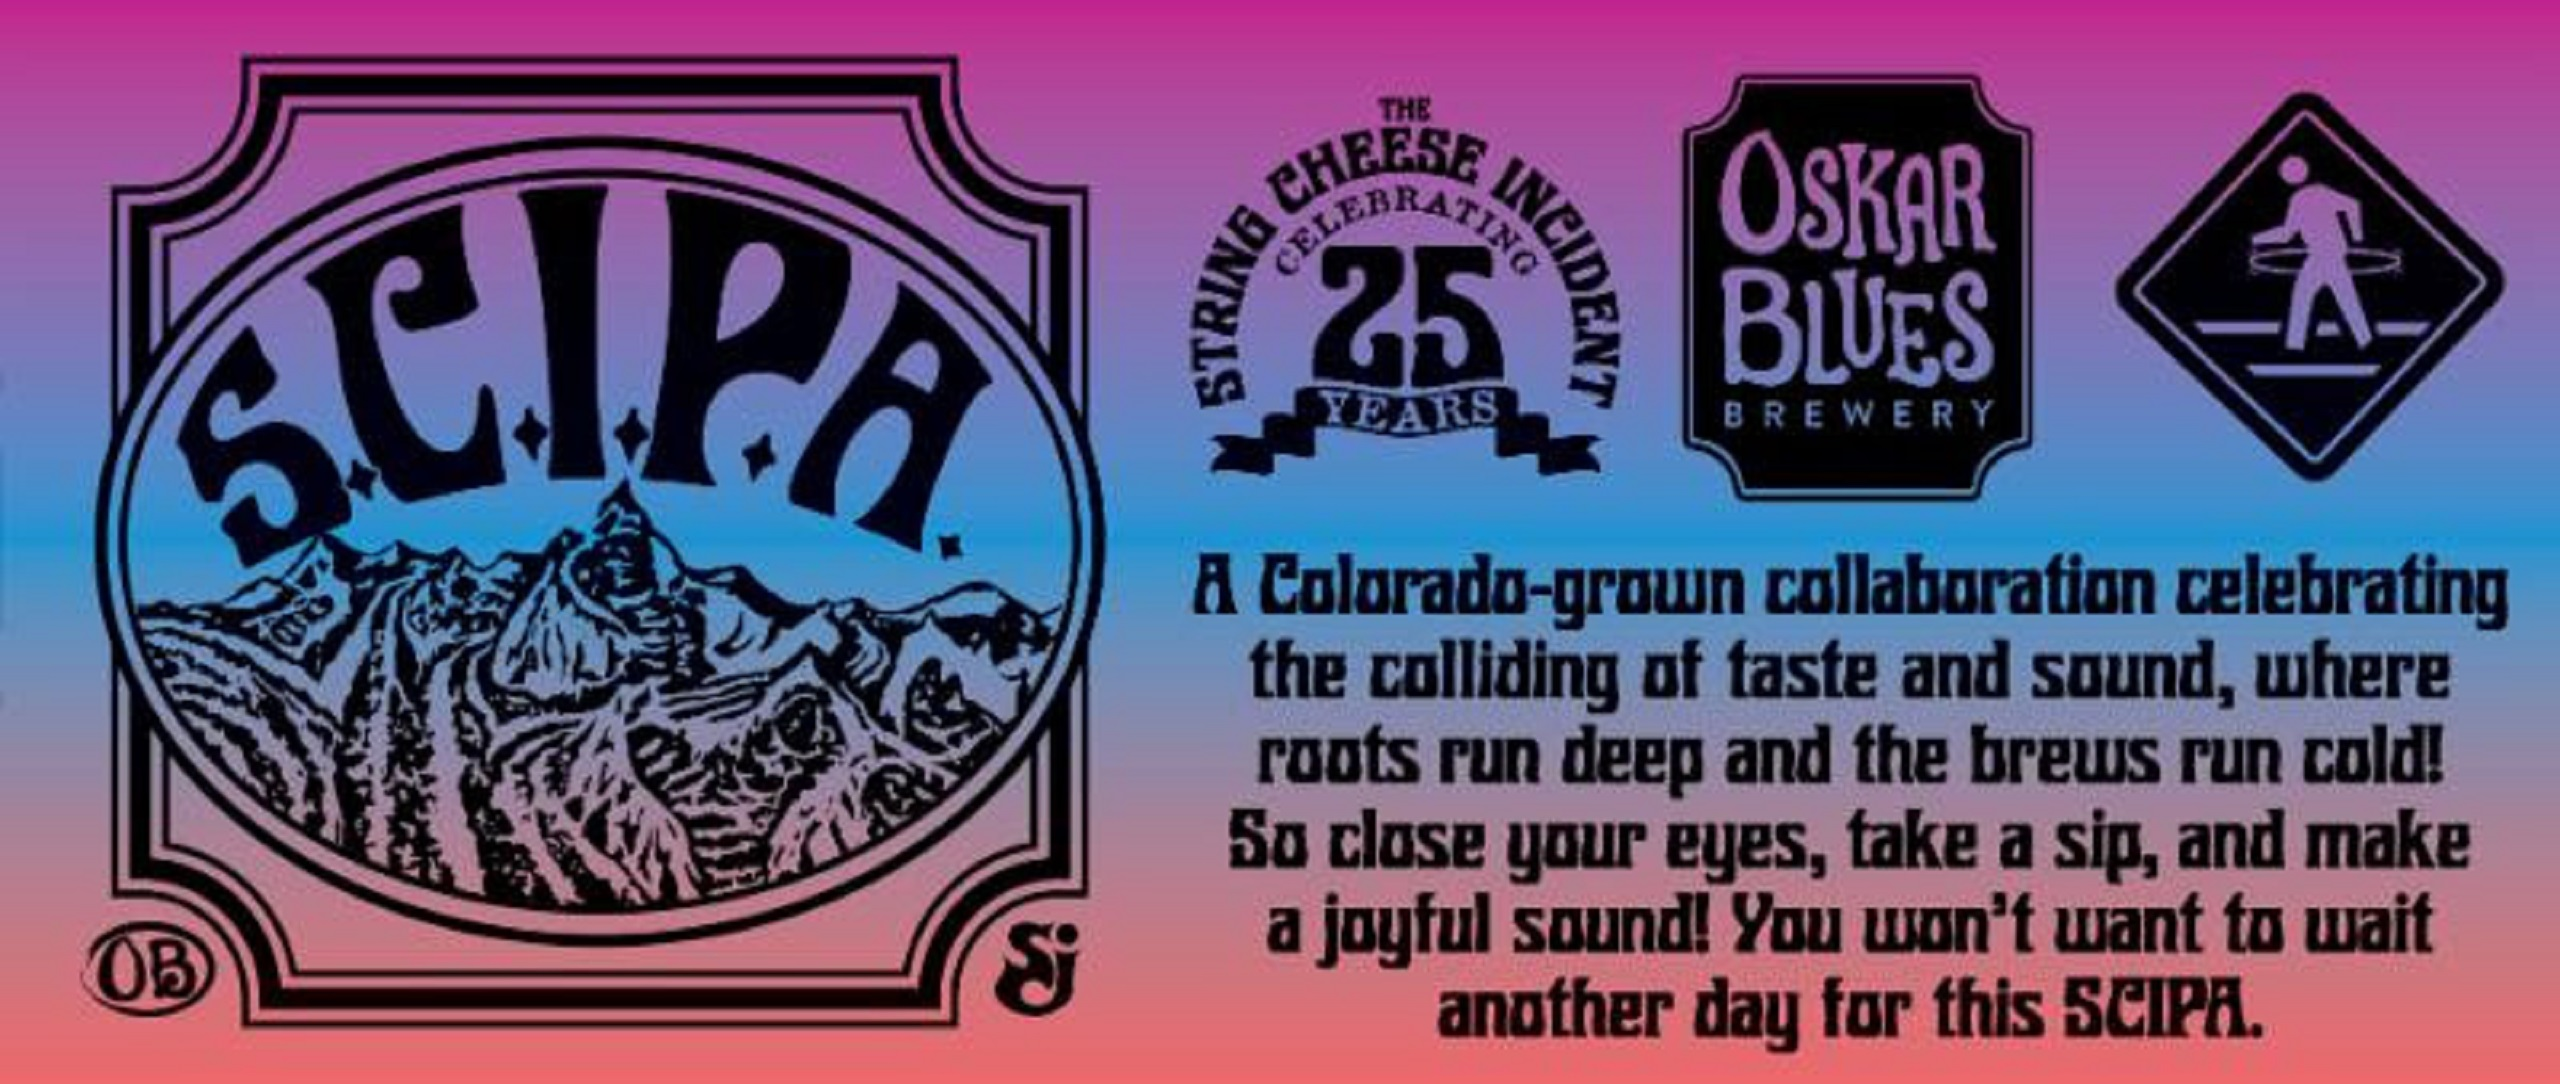 The String Cheese Incident Announces Collaboration w/Oskar Blues Brewery for 25th Anniversary